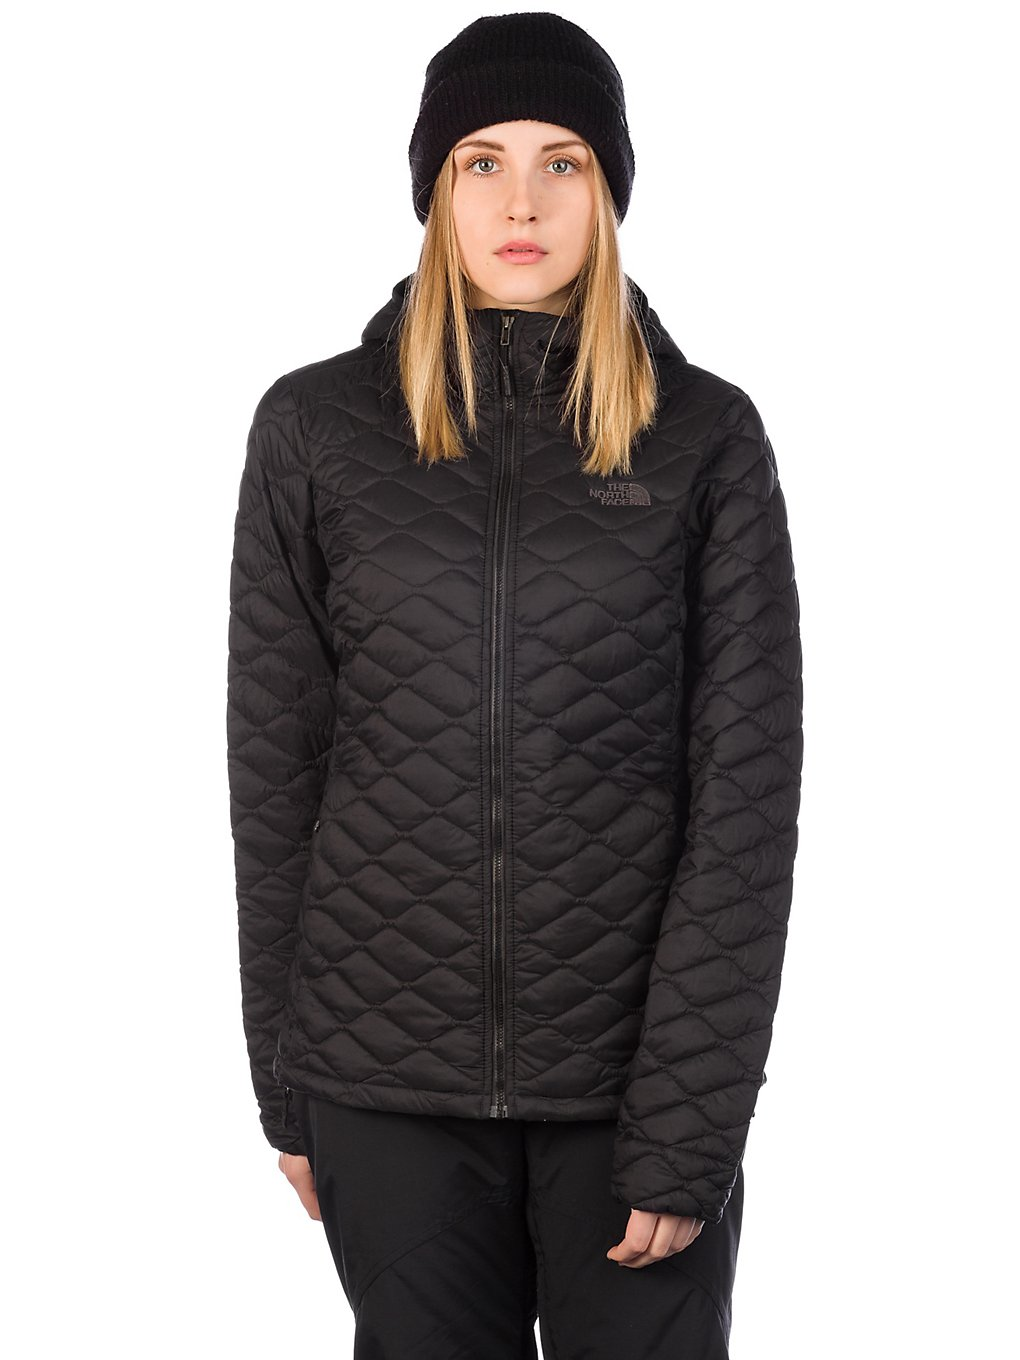 THE NORTH FACE Thermoball Hooded Outdoor Jacket tnf black matte